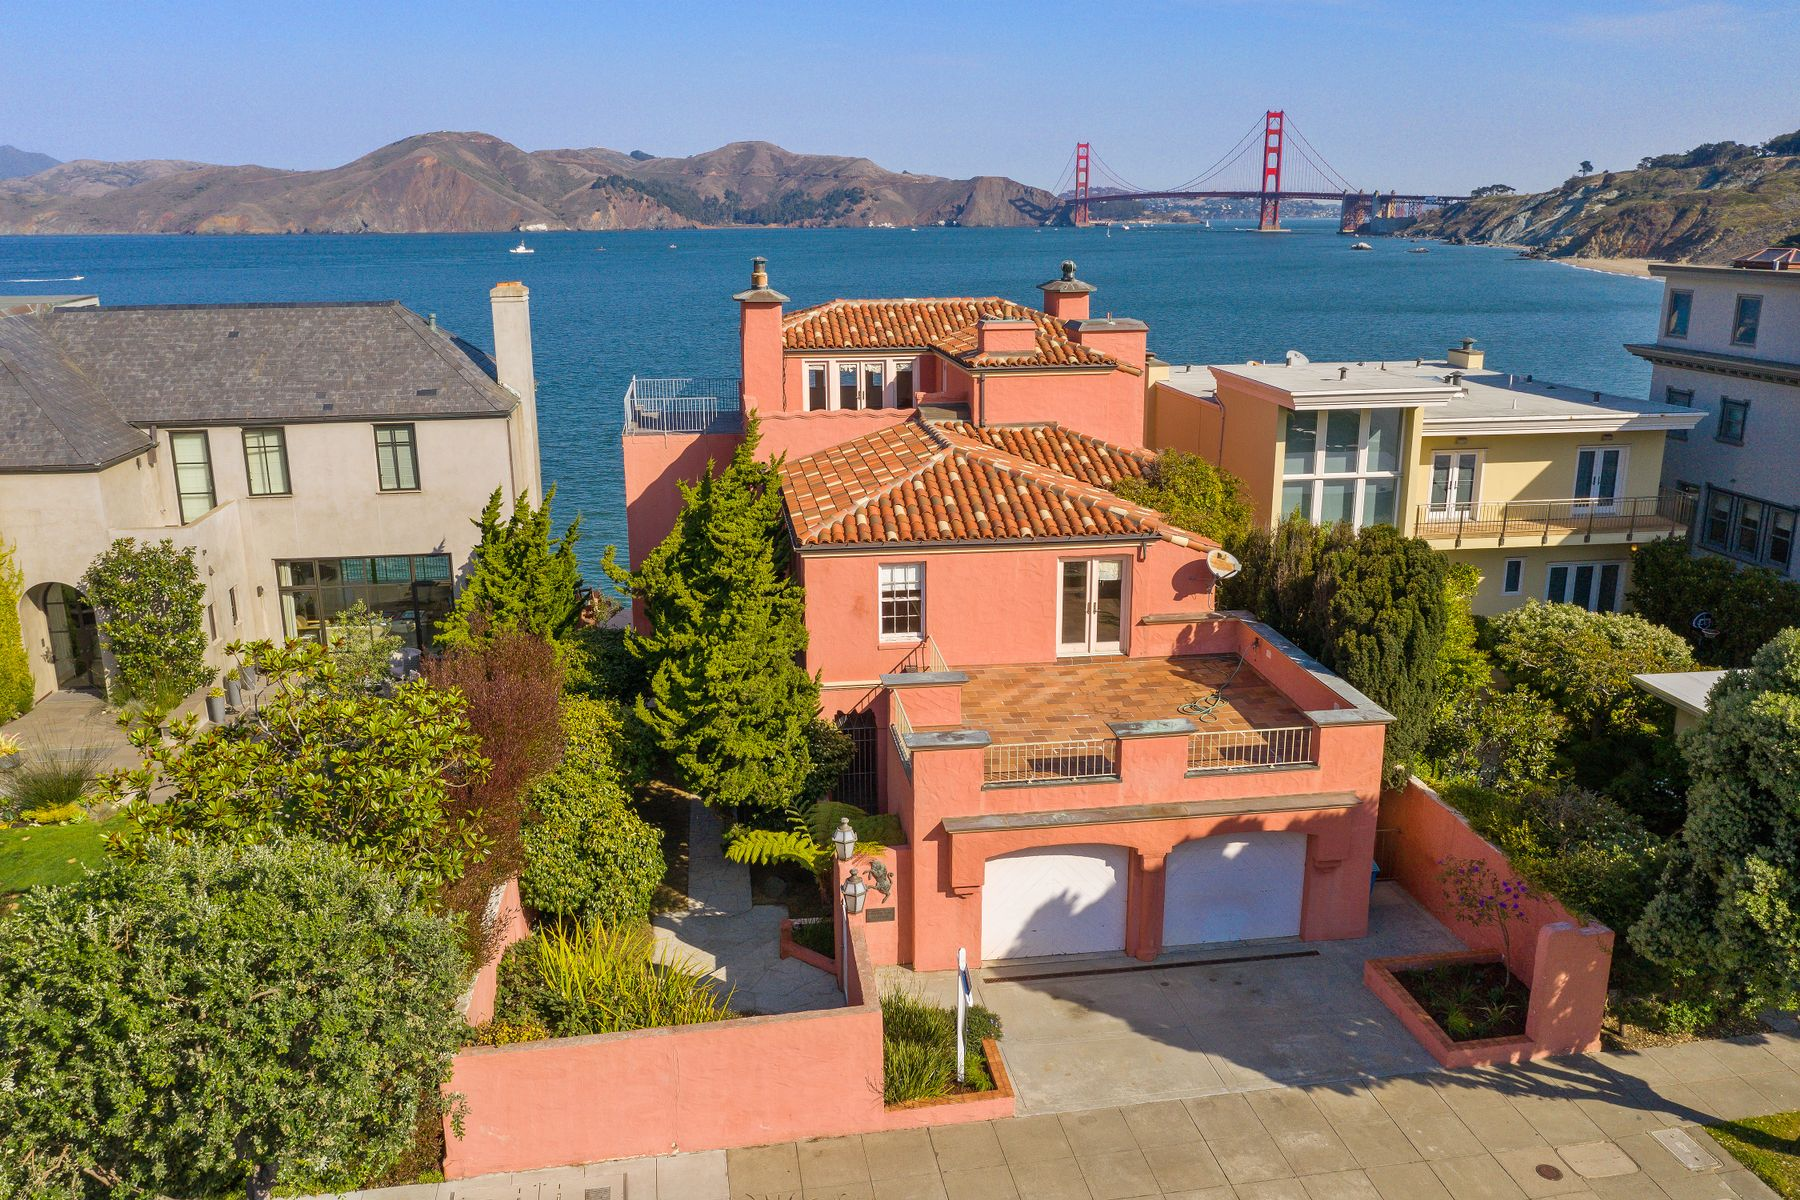 Single Family Homes for Active at Unique Sea Cliff Home 224 Sea Cliff Ave San Francisco, California 94121 United States